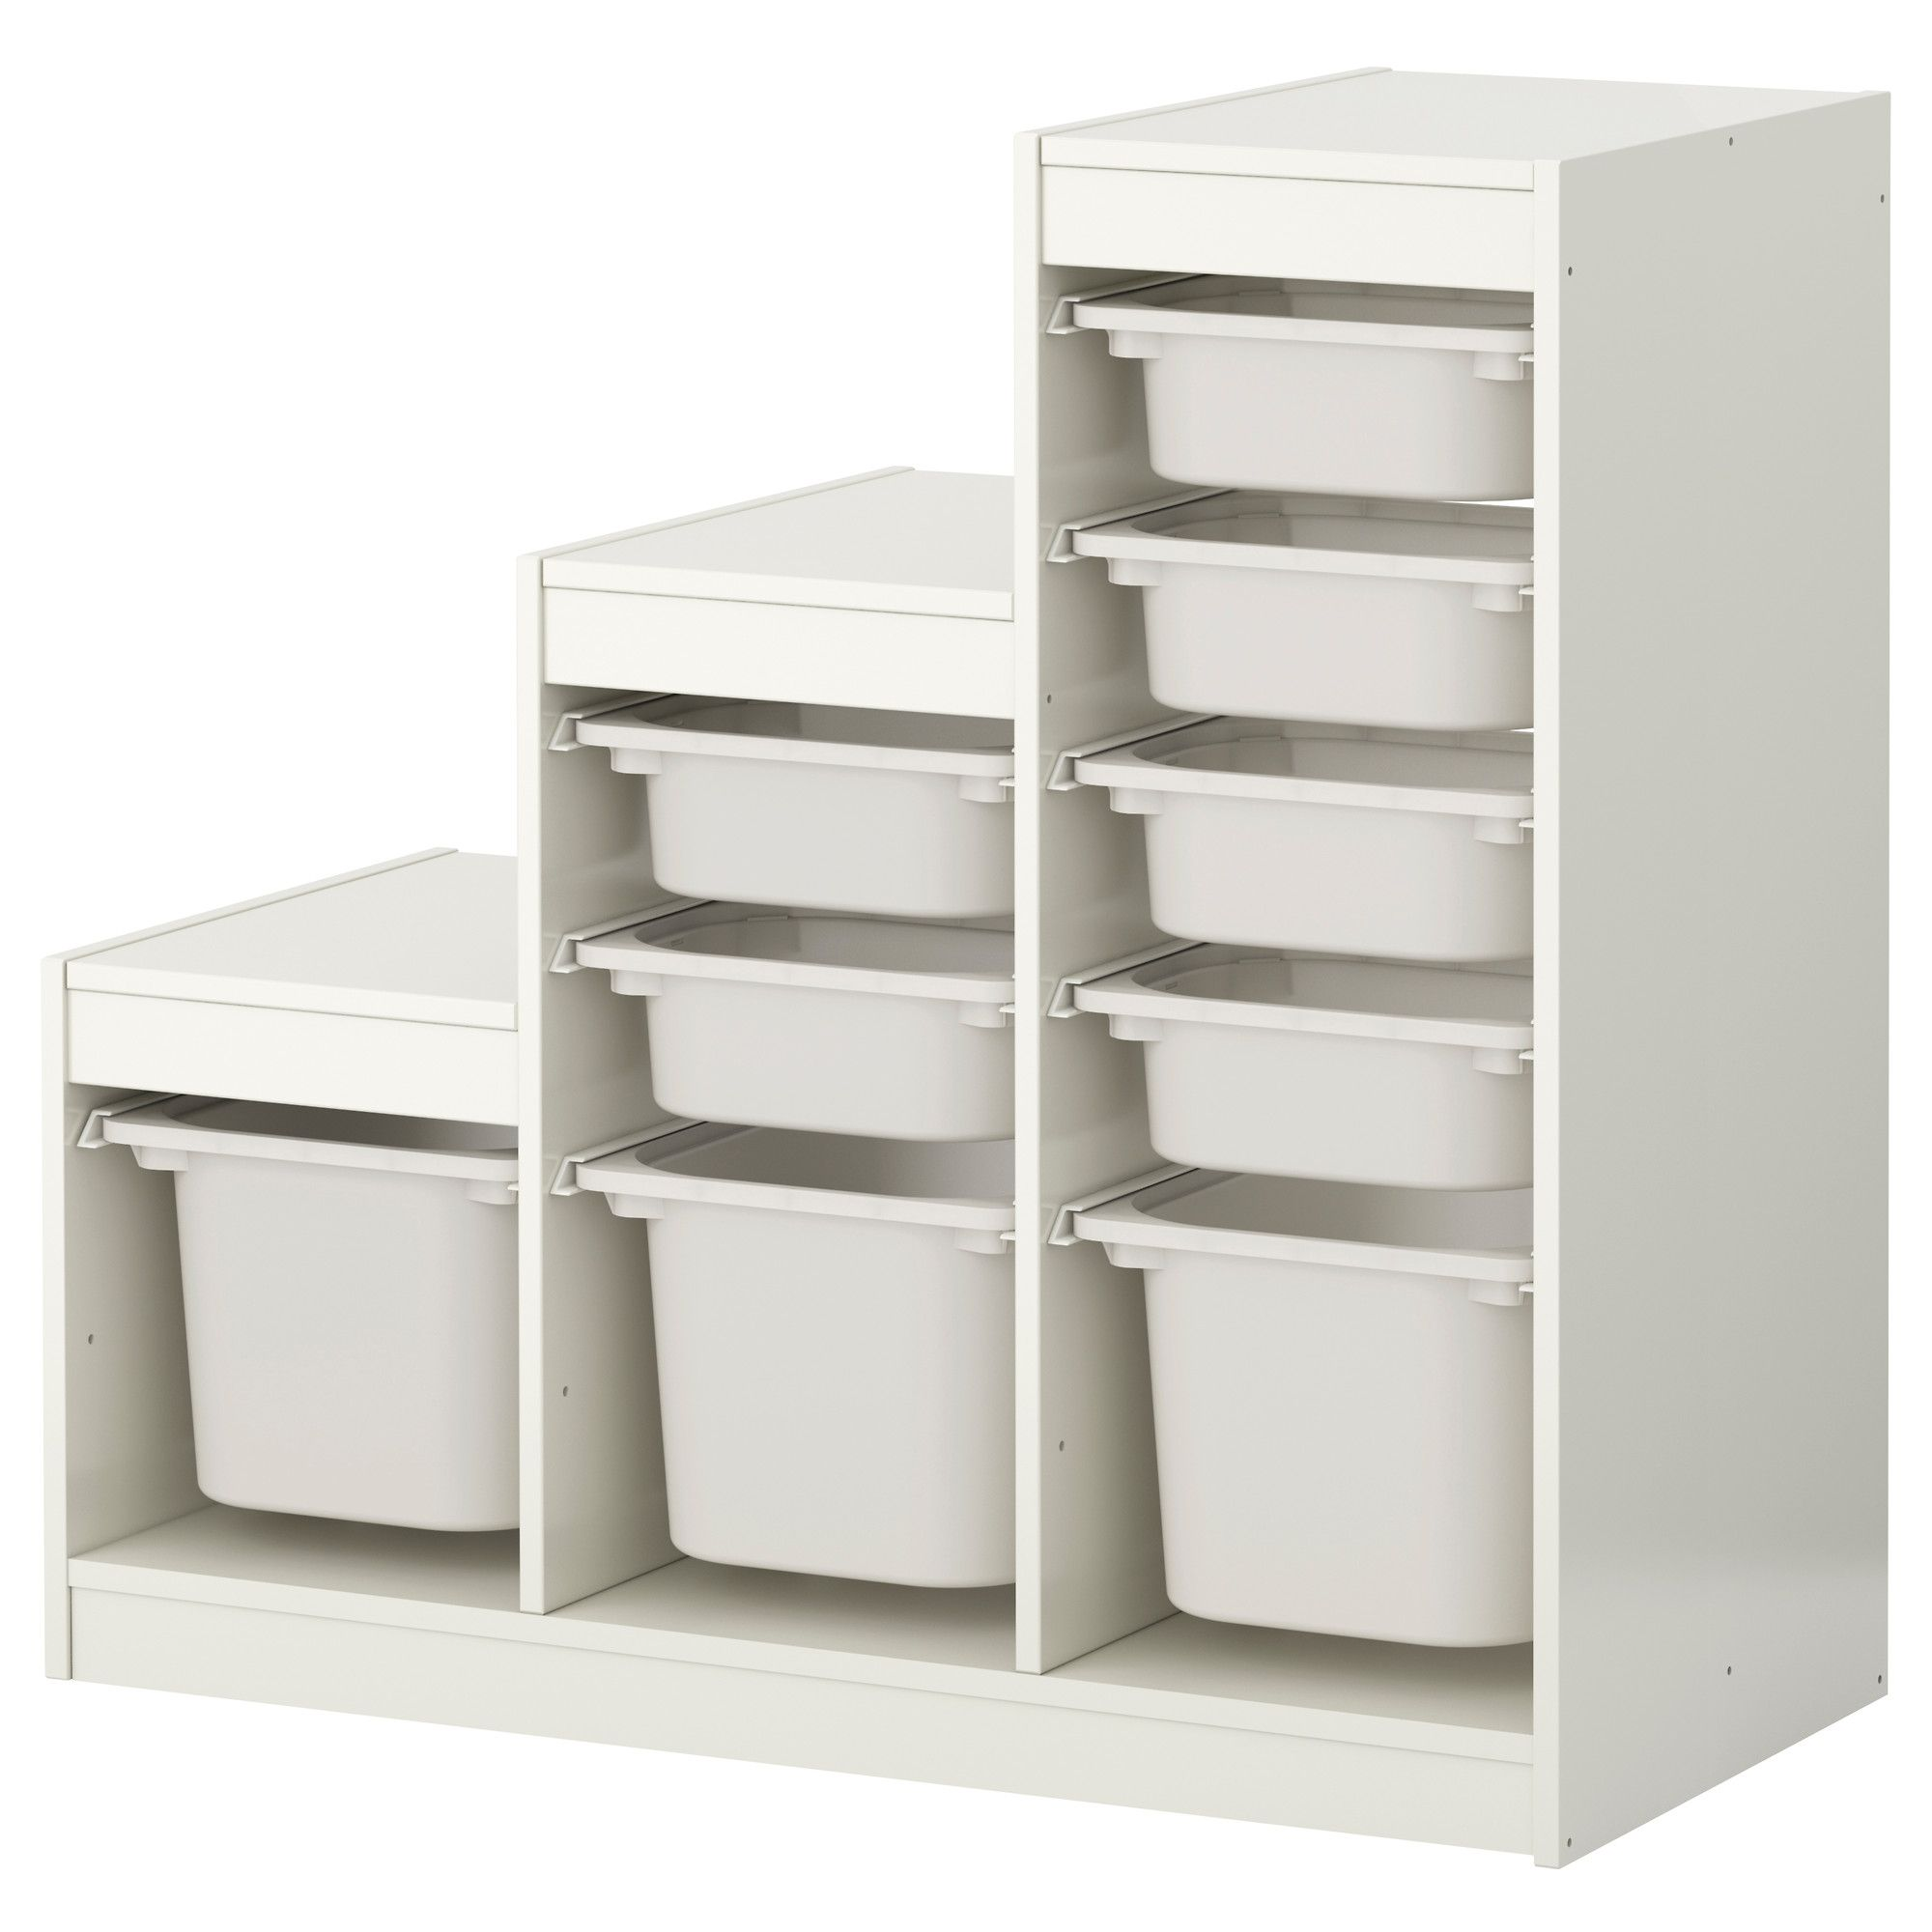 Uncategorized Storage Containers Ikea trofast storage combination with boxes ikea see im moving into a